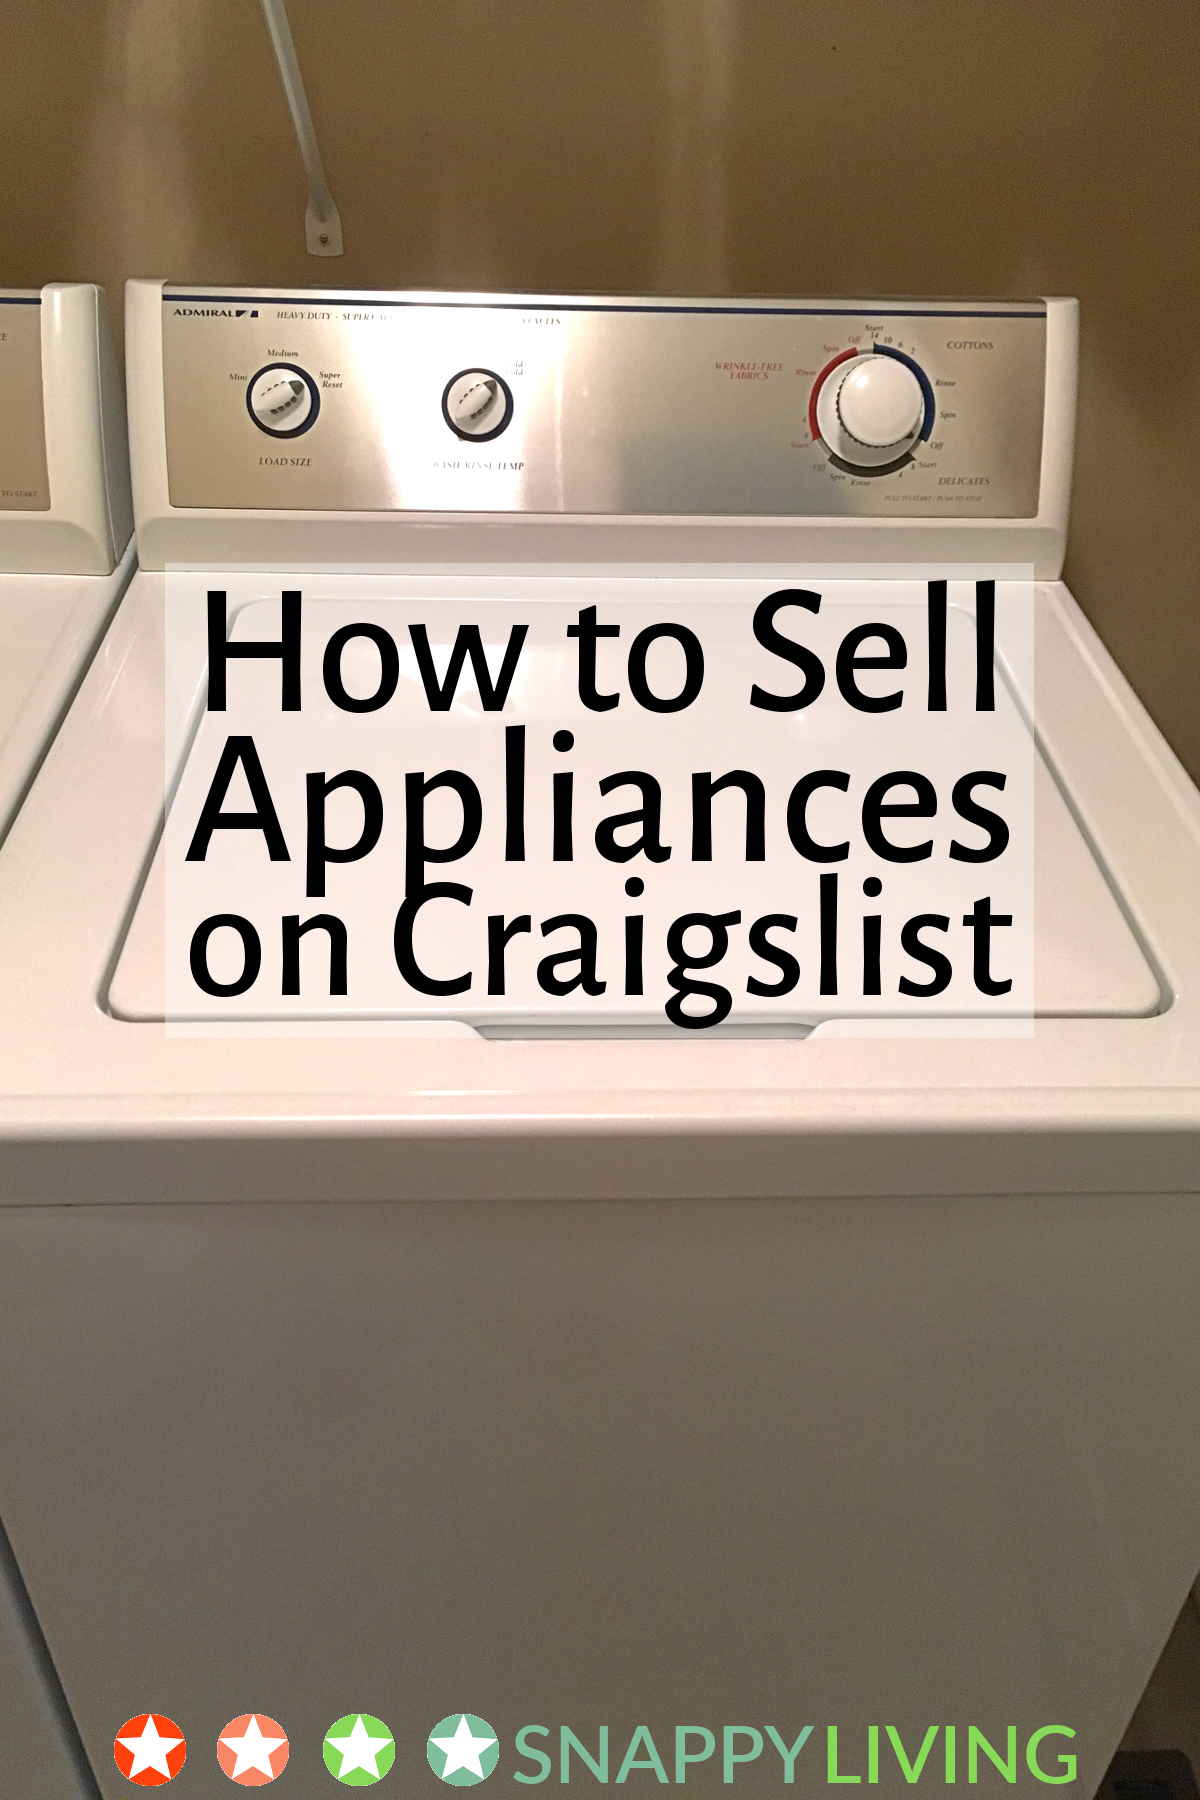 How to sell appliances on Craigslist